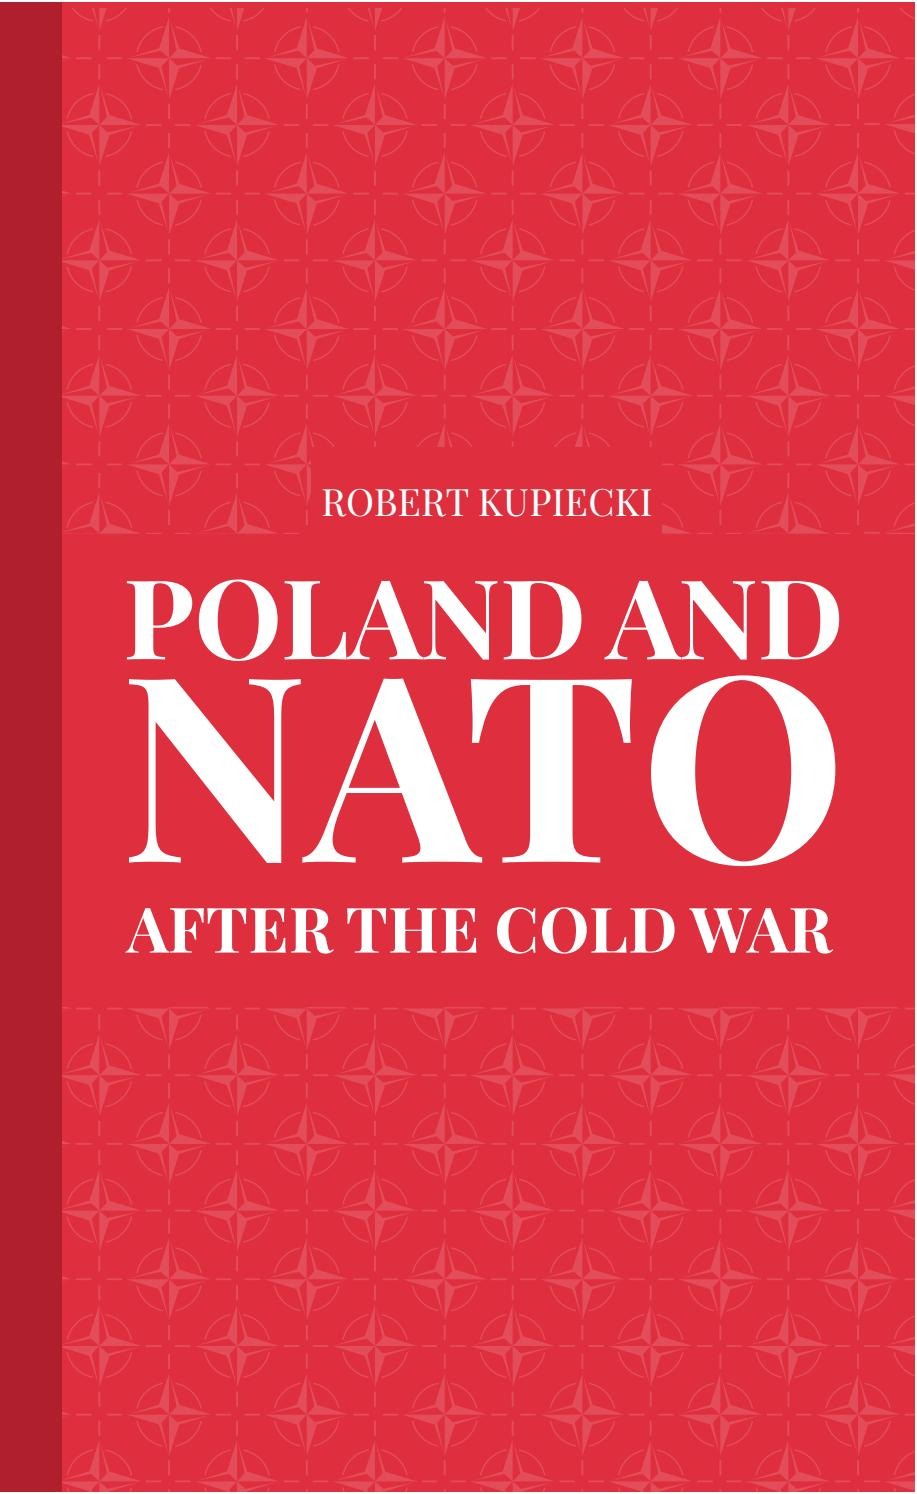 Poland and NATO after the Cold War by Ministry of Foreign